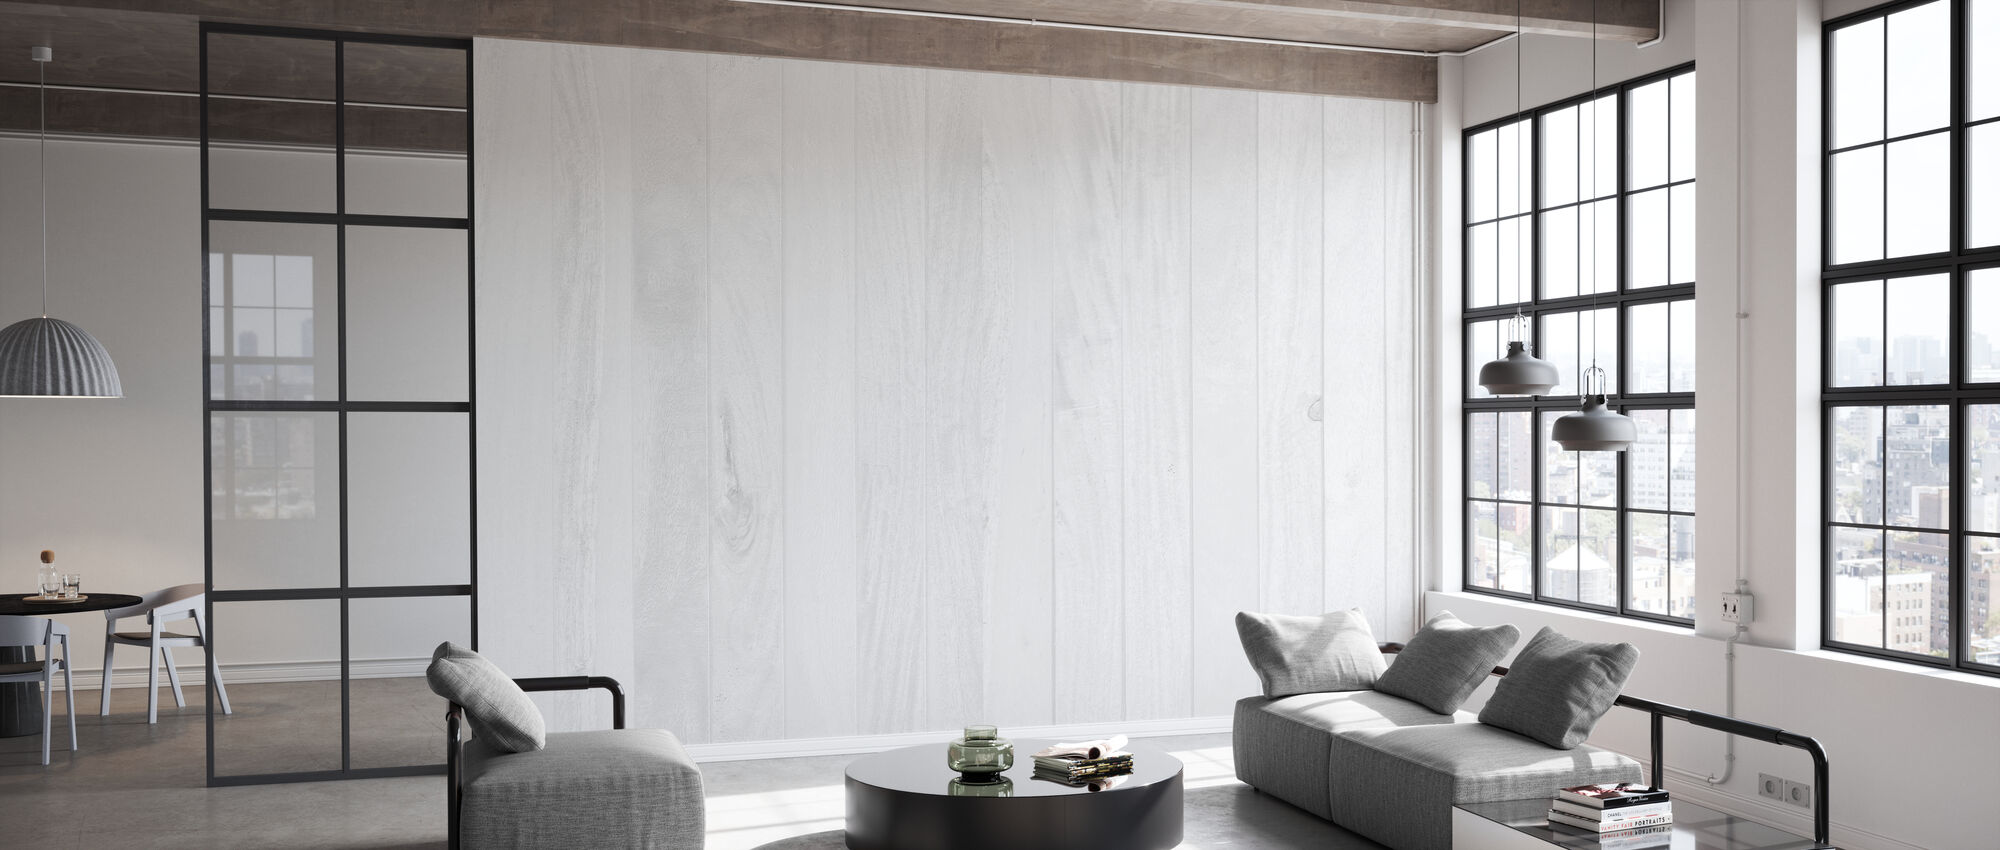 White Wooden Wall - Wallpaper - Office